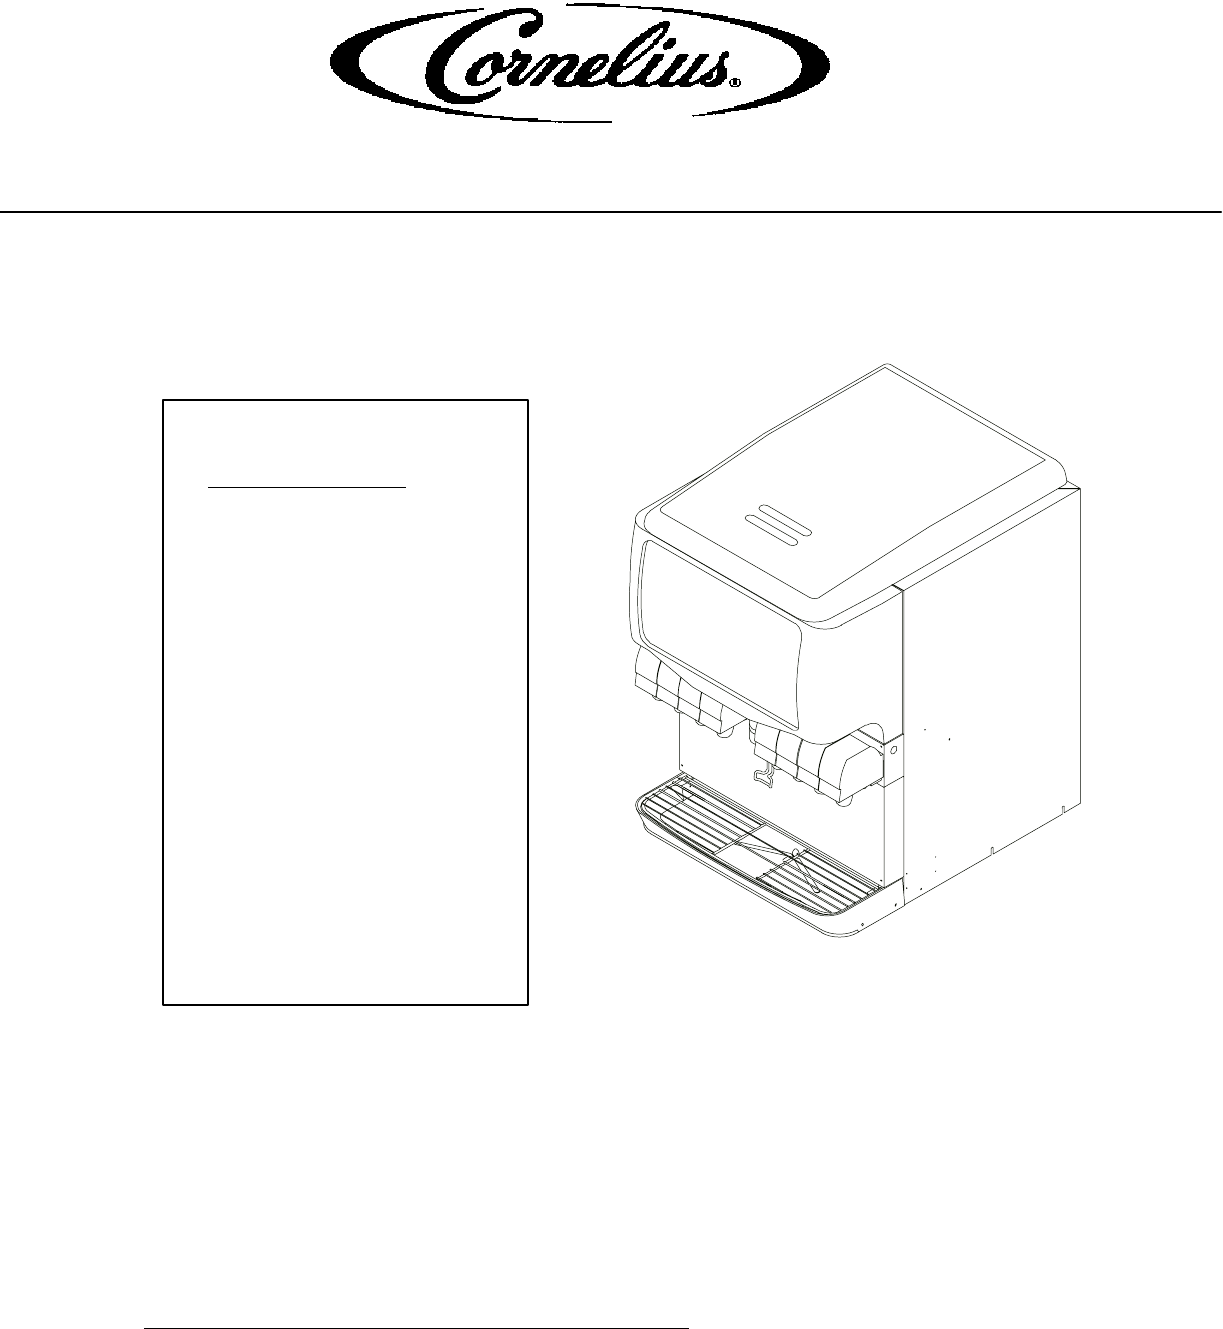 Cornelius Beverage Dispenser 175 8 Valve User Guide